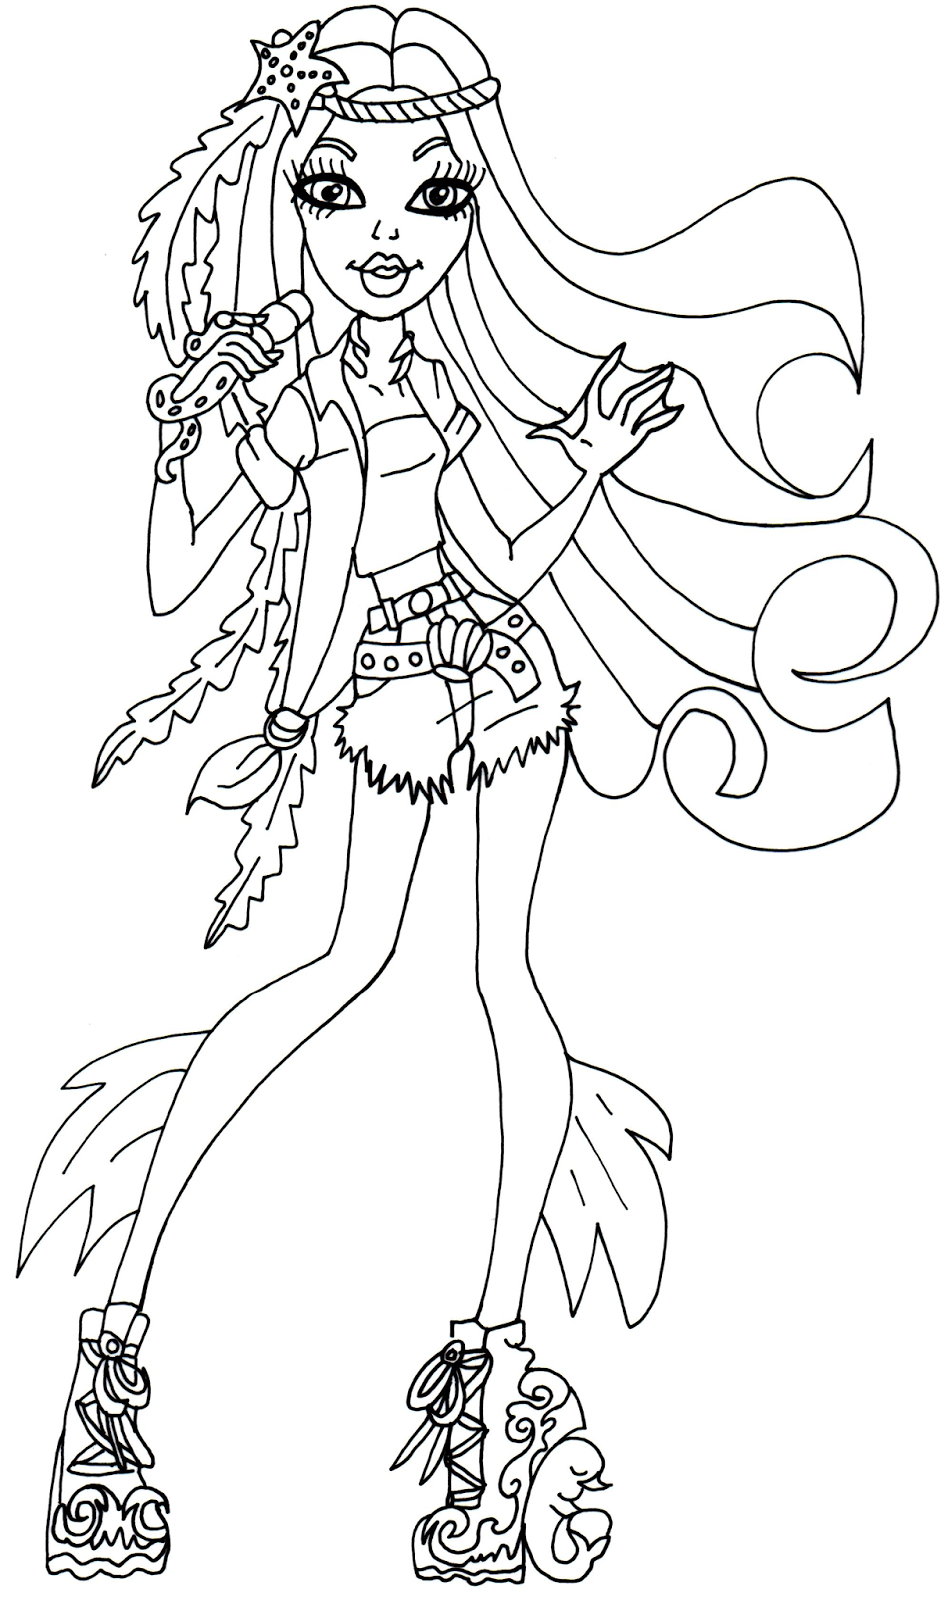 This is a graphic of Shocking Monster High Coloring Page